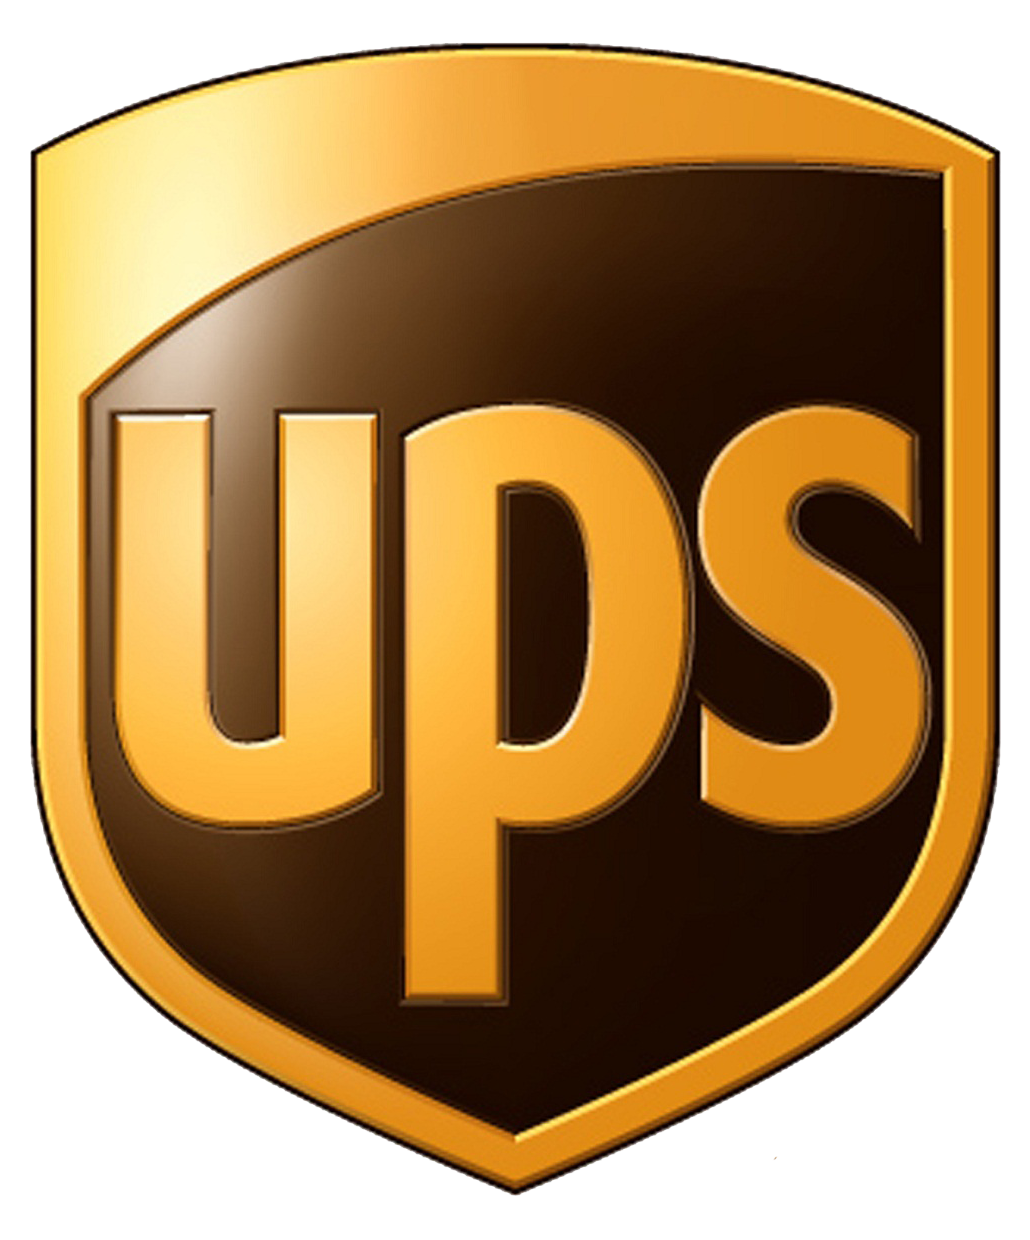 Fedex clipart package delivery Best UPS next 2017 vs